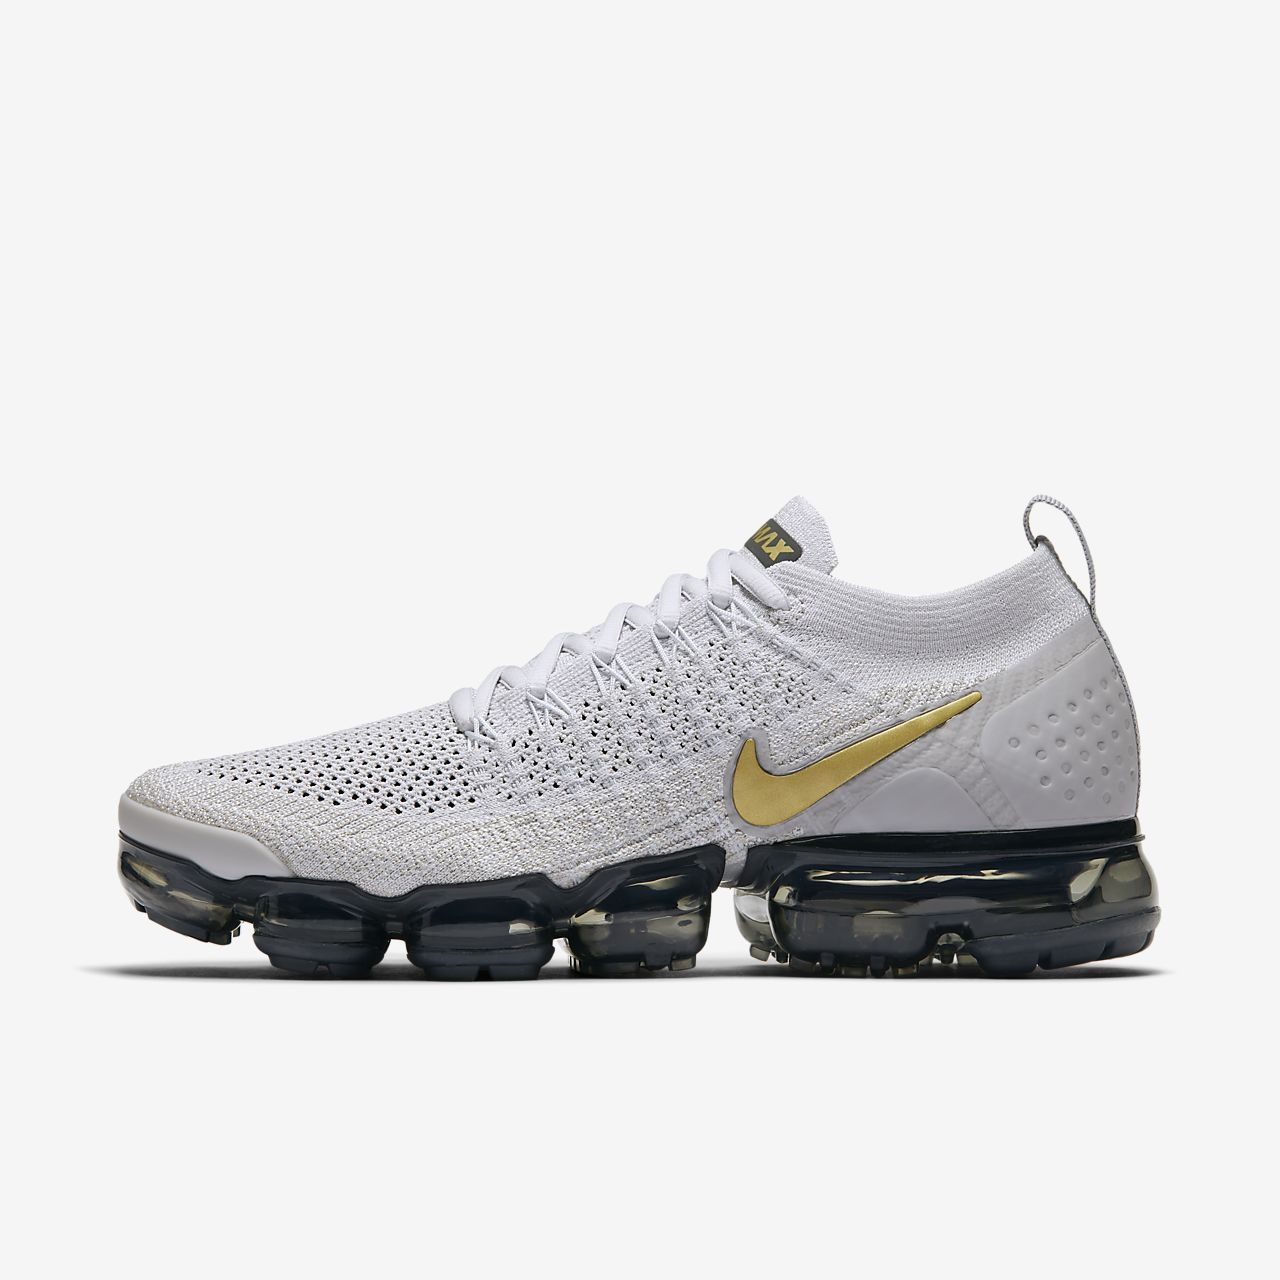 74ad4ee432df Nike Air VaporMax Flyknit 2 Women s Shoe. Nike.com GB